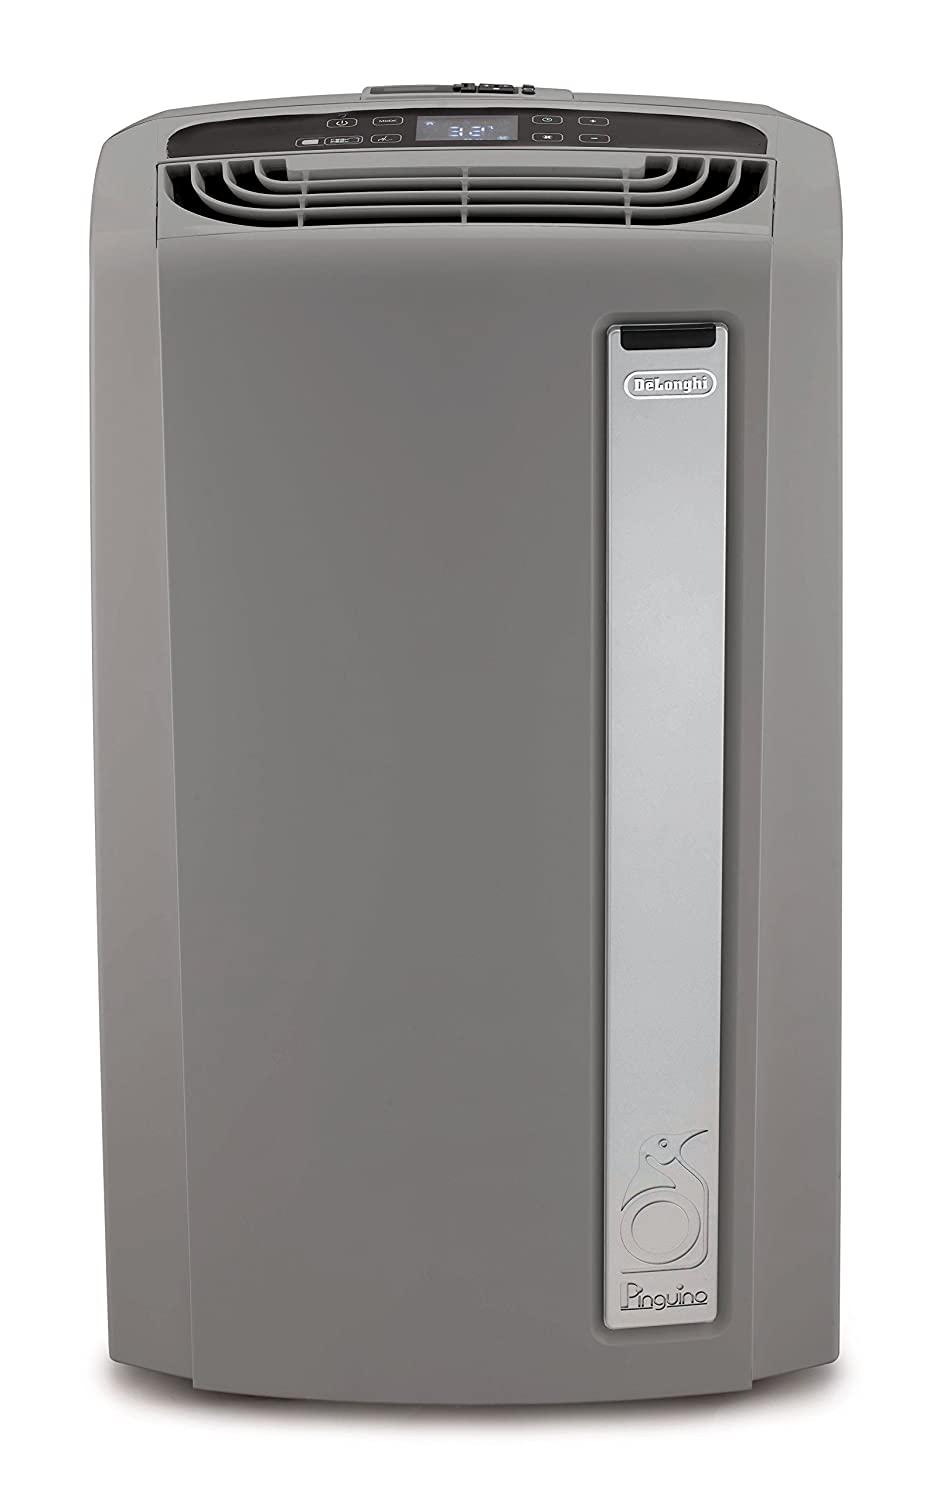 DeLonghi Whisper Cool Portable Air Conditioner, 550 sq. ft, Light Gray